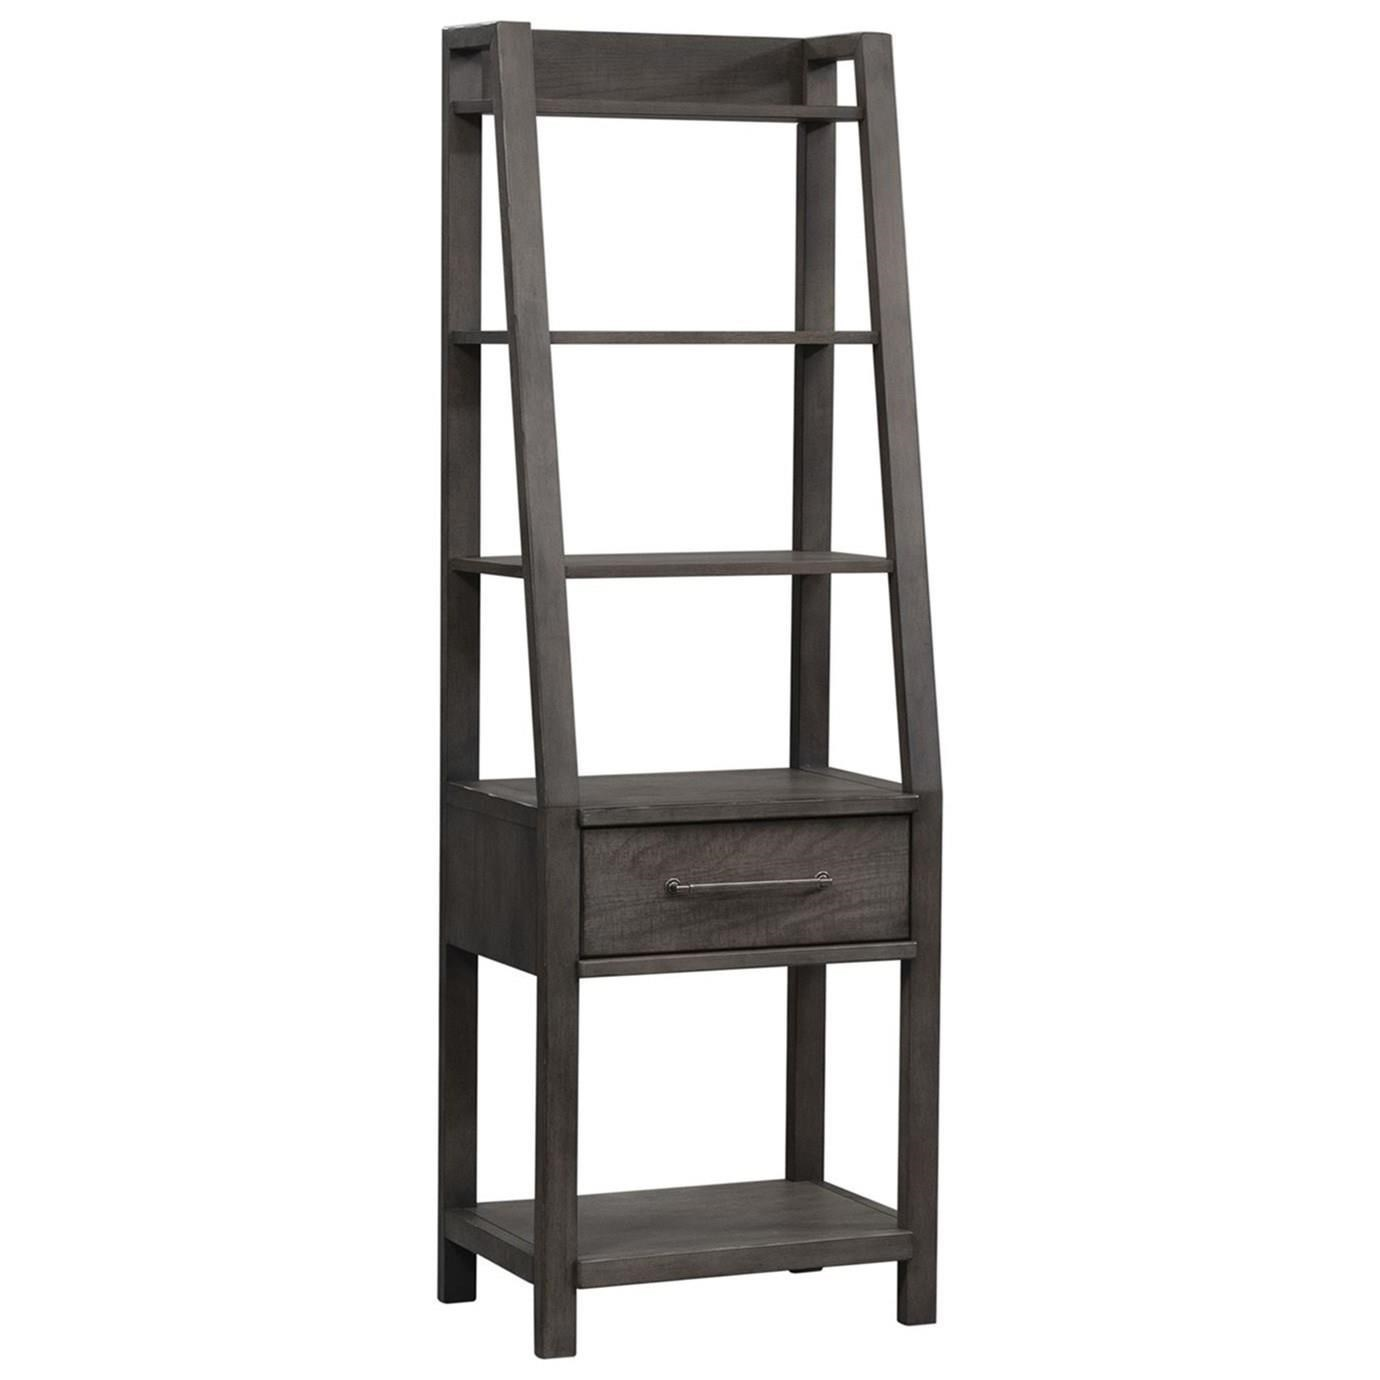 Modern Farmhouse Leaning Bookcase by Liberty Furniture at Beck's Furniture